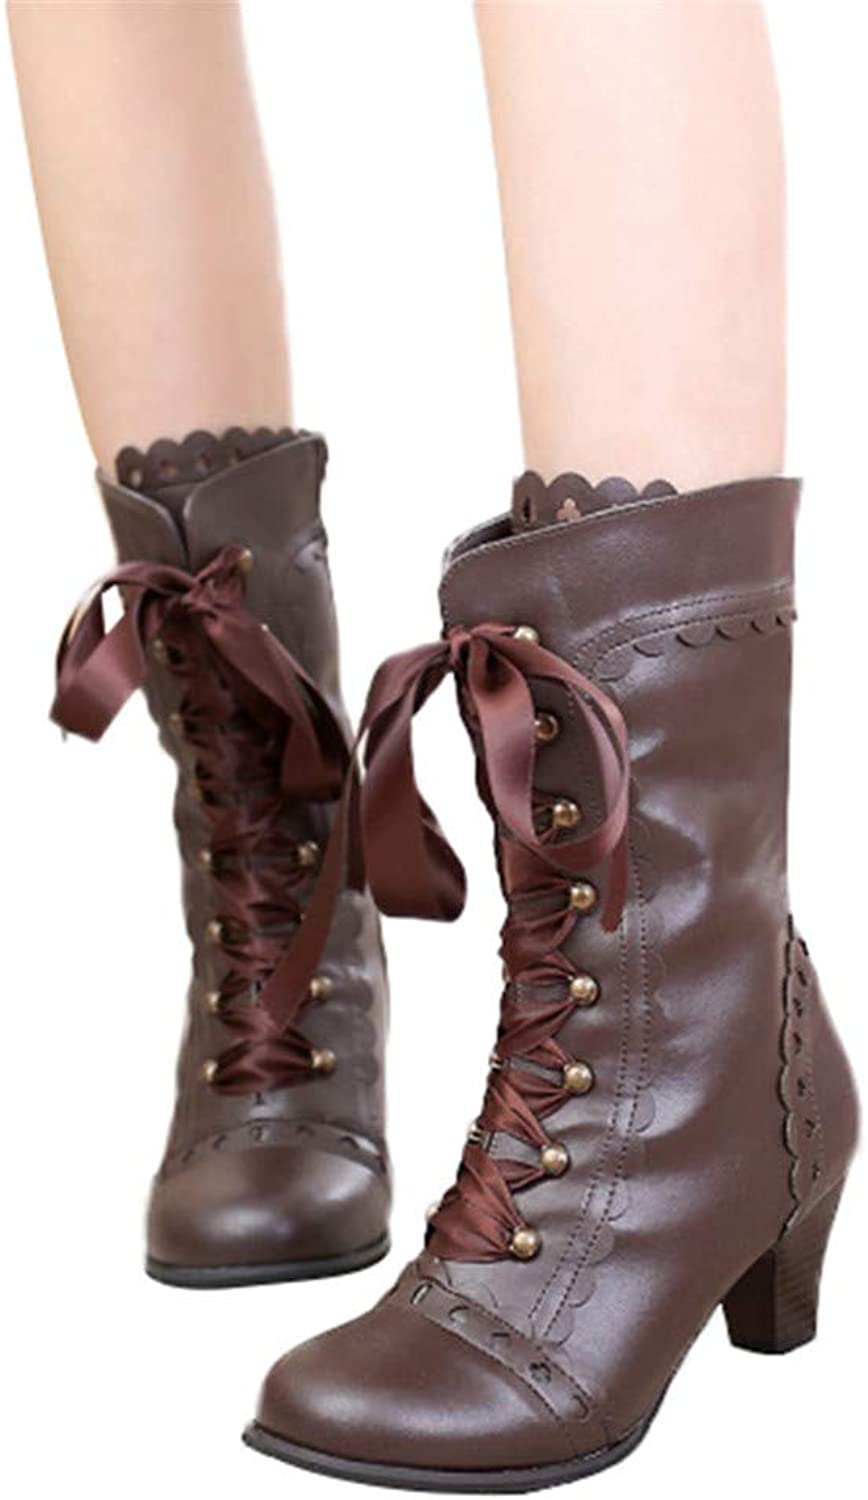 Feminino Vintage Lace-up Ribbon Zipper Boots Pu Leather High Heel Mid Calf Bootie